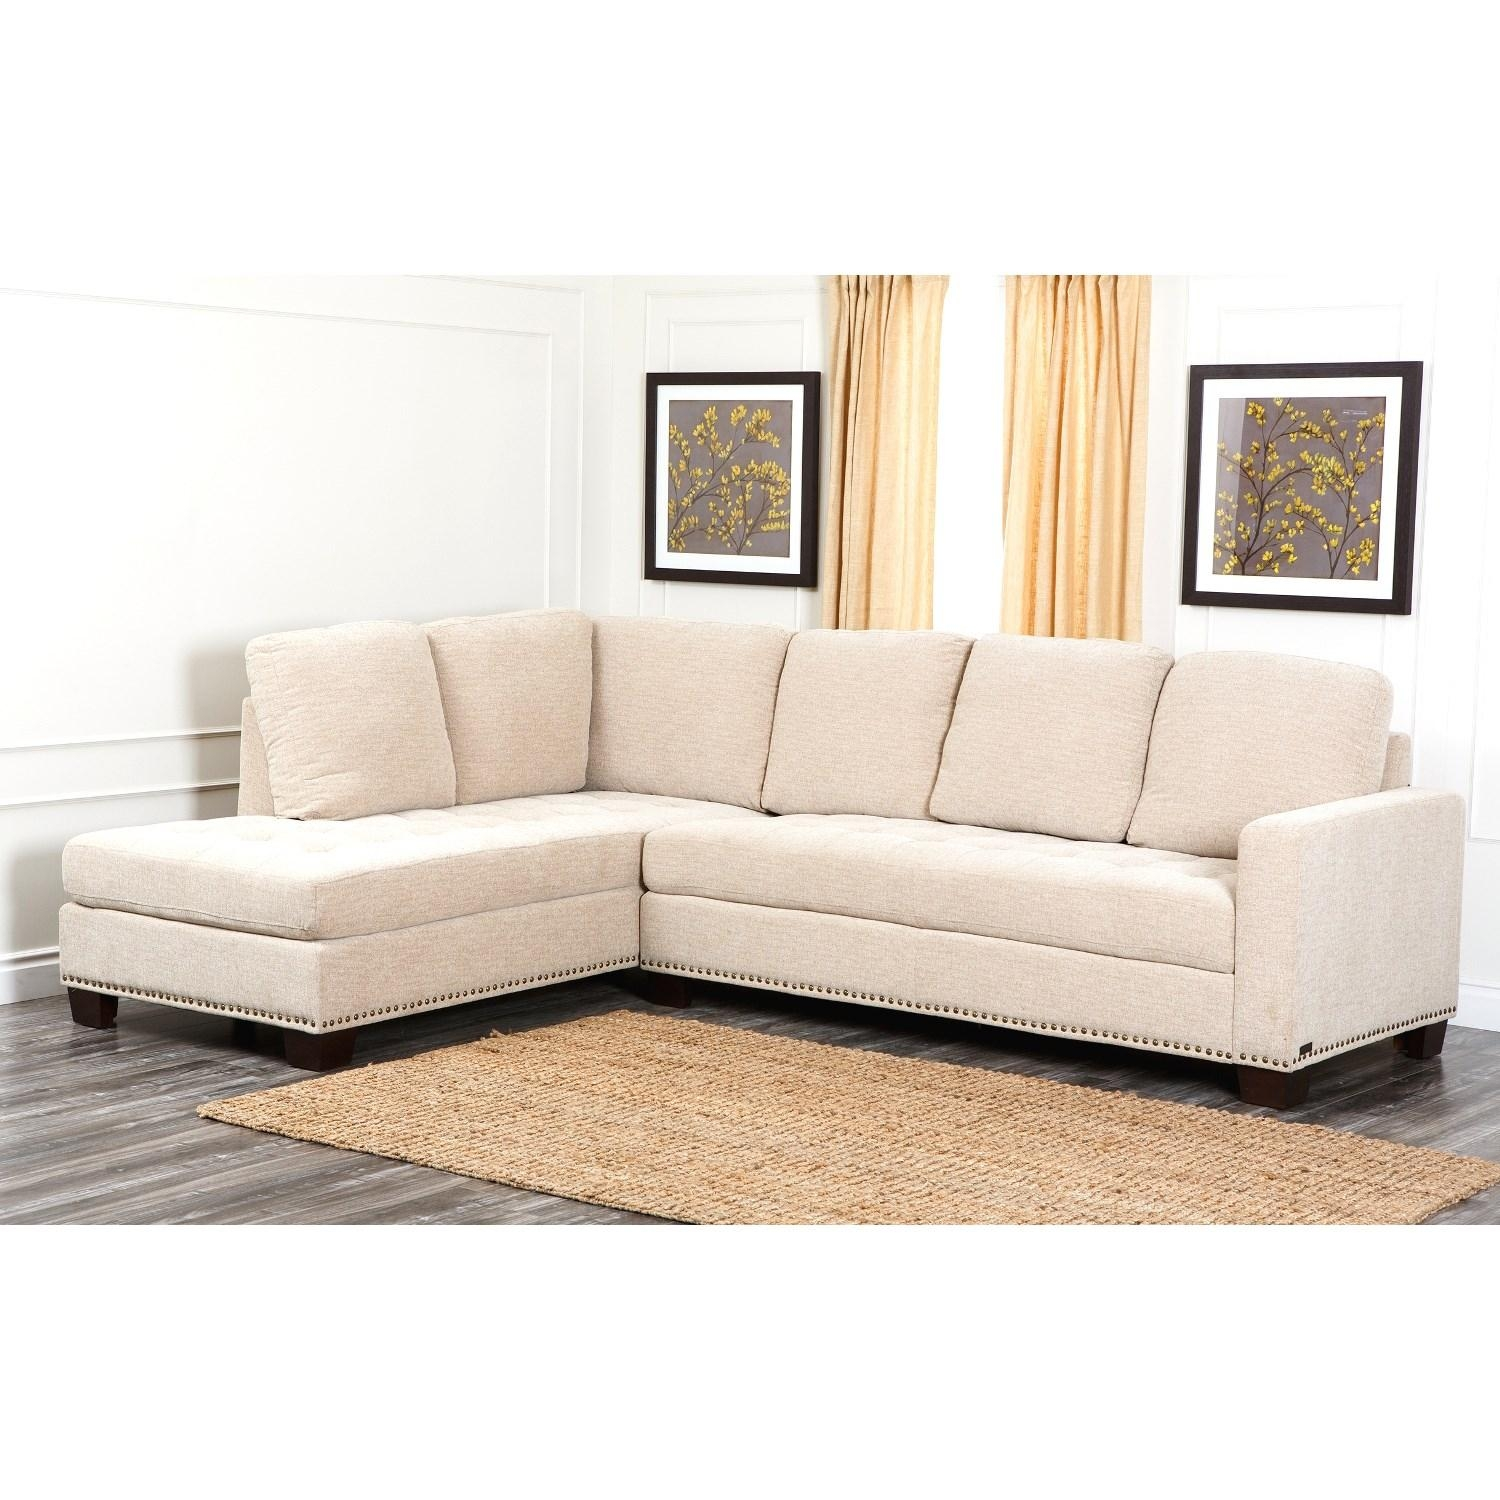 Abbyson Living Ci D10357 Crm Claridge Fabric Sectional In Cream Pertaining To Abbyson Living Sofas (Image 8 of 20)